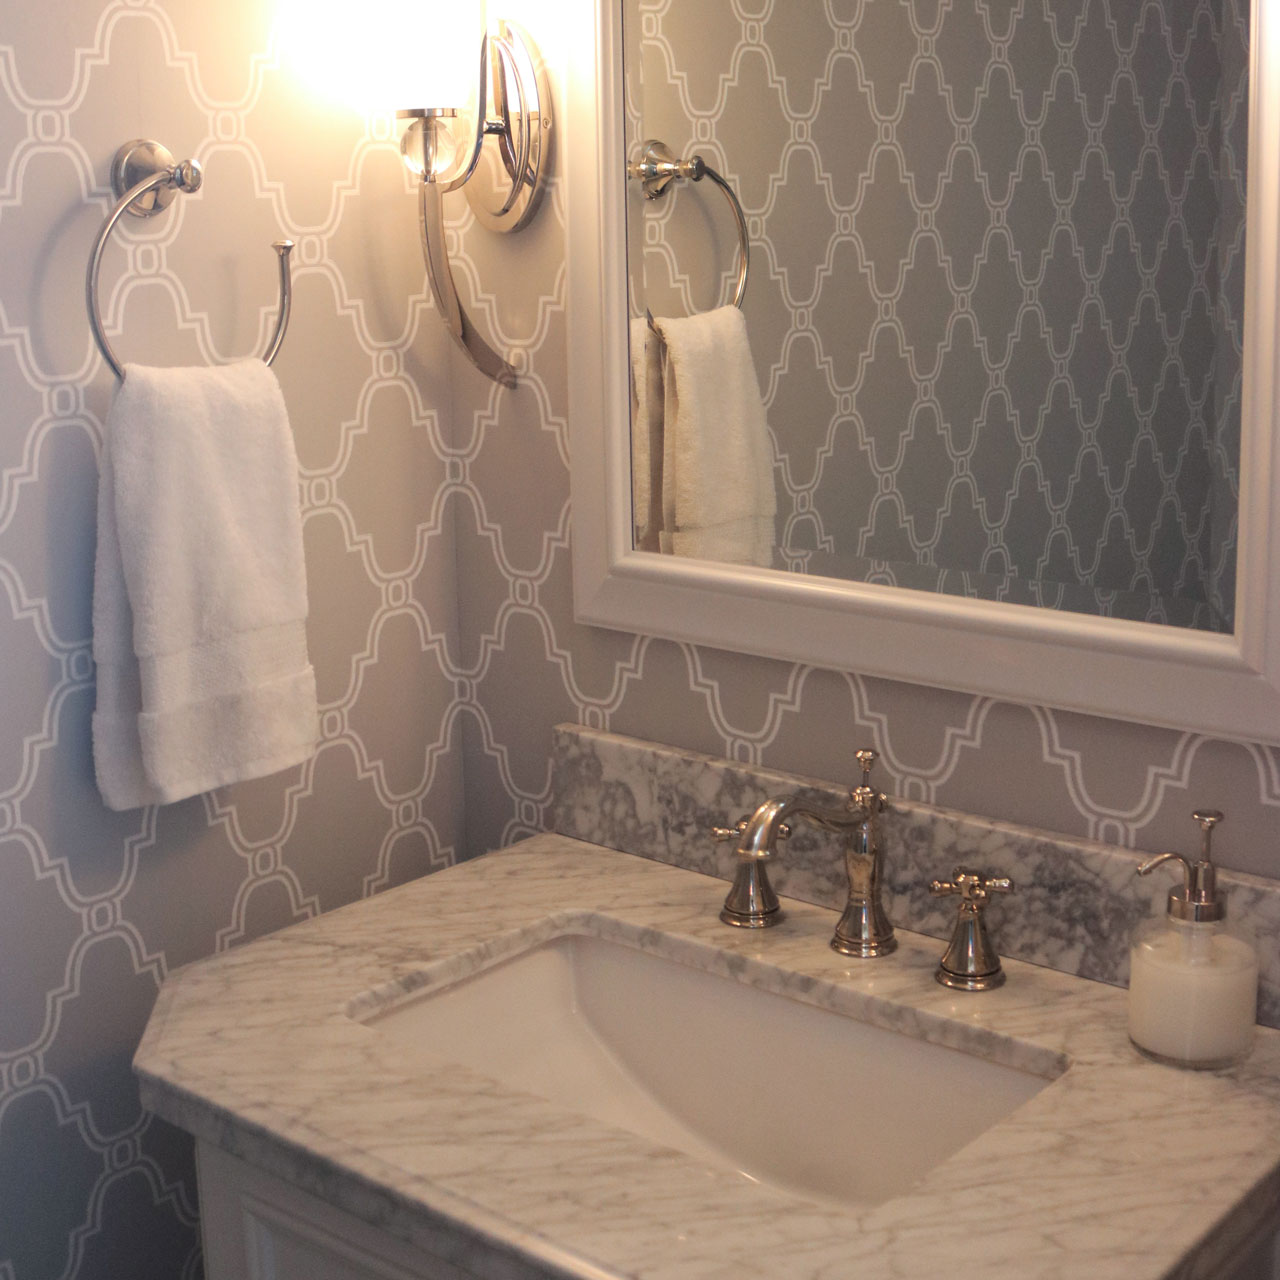 This bathroom was built according to the vision of our client.